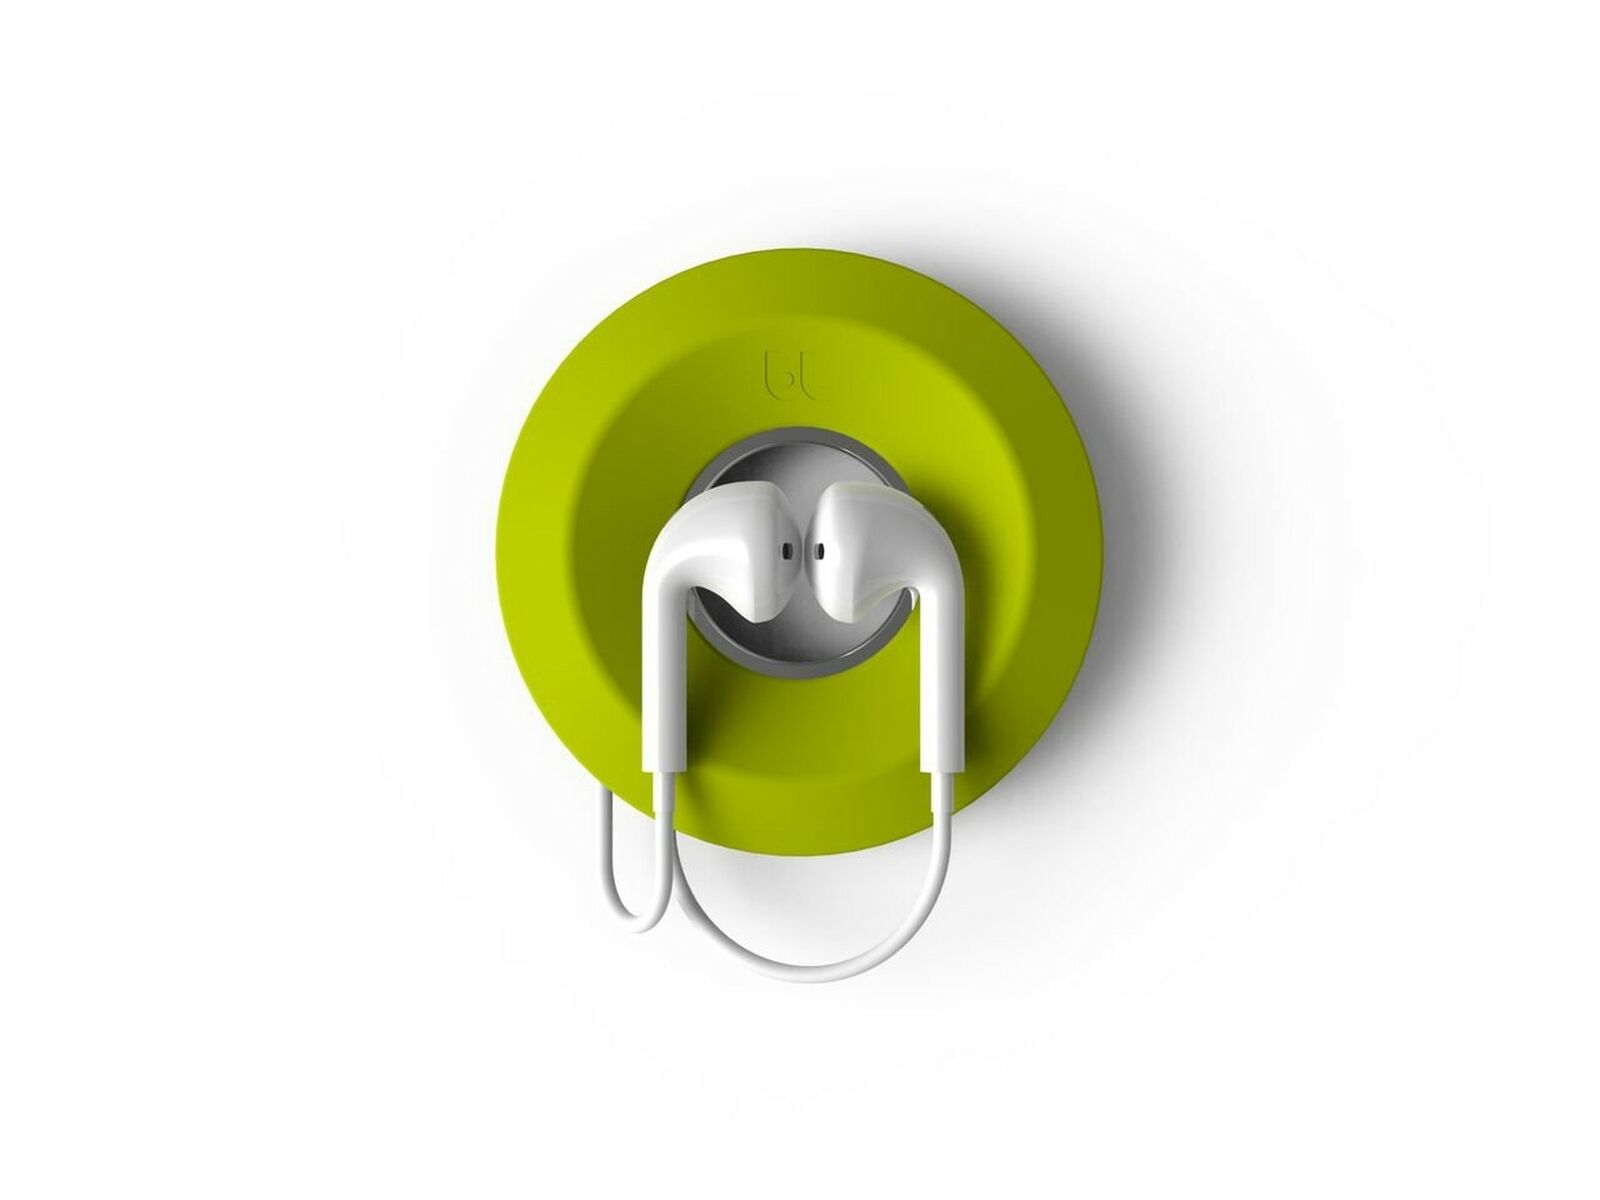 Bluelounge Cableyoyo Headphone Cable Management Spool - Green